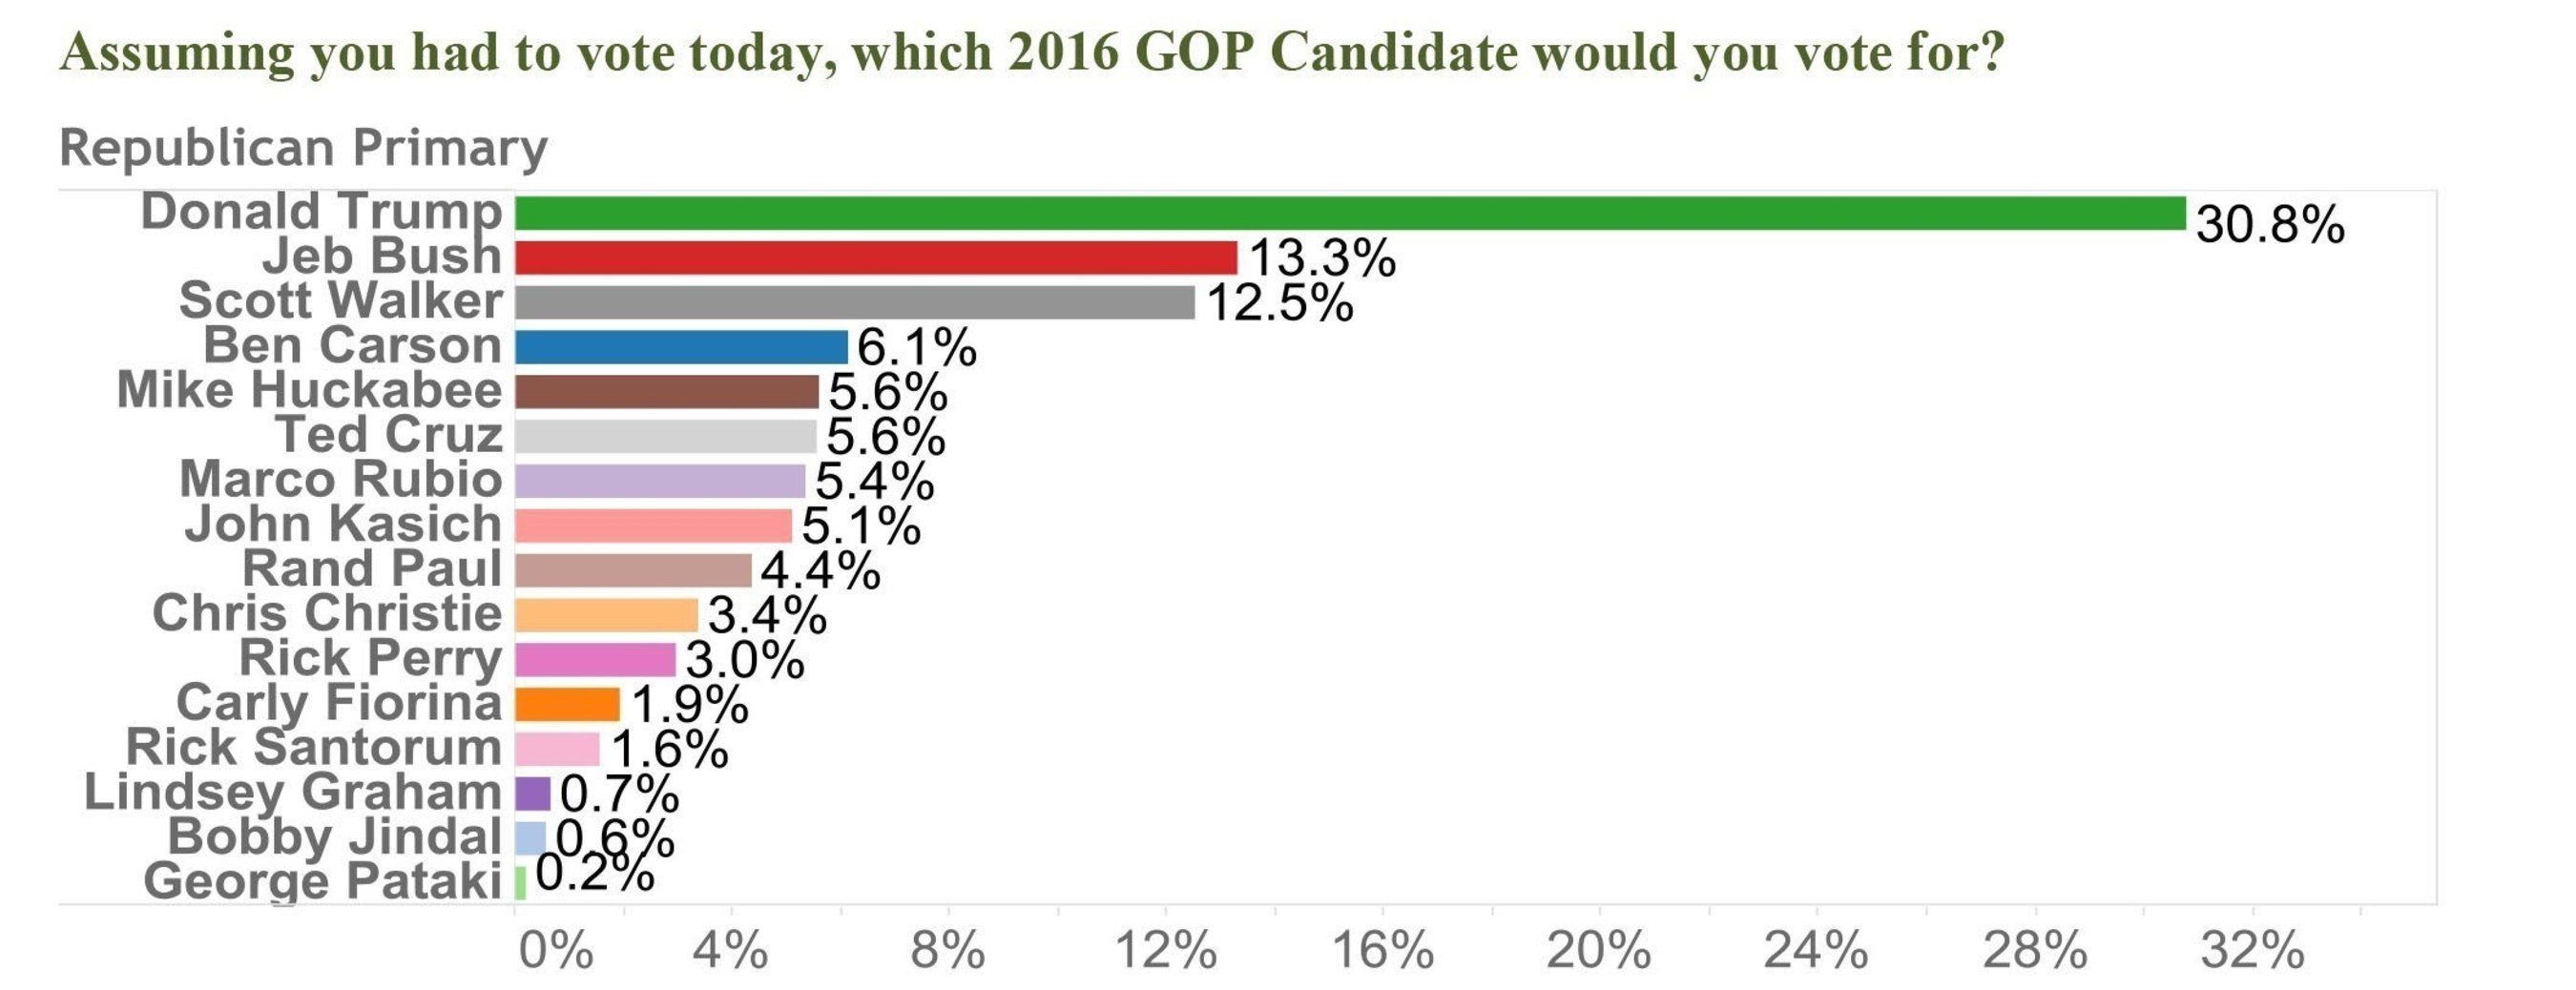 Assuming you had to vote today, which 2016 GOP Candidate would you vote for?